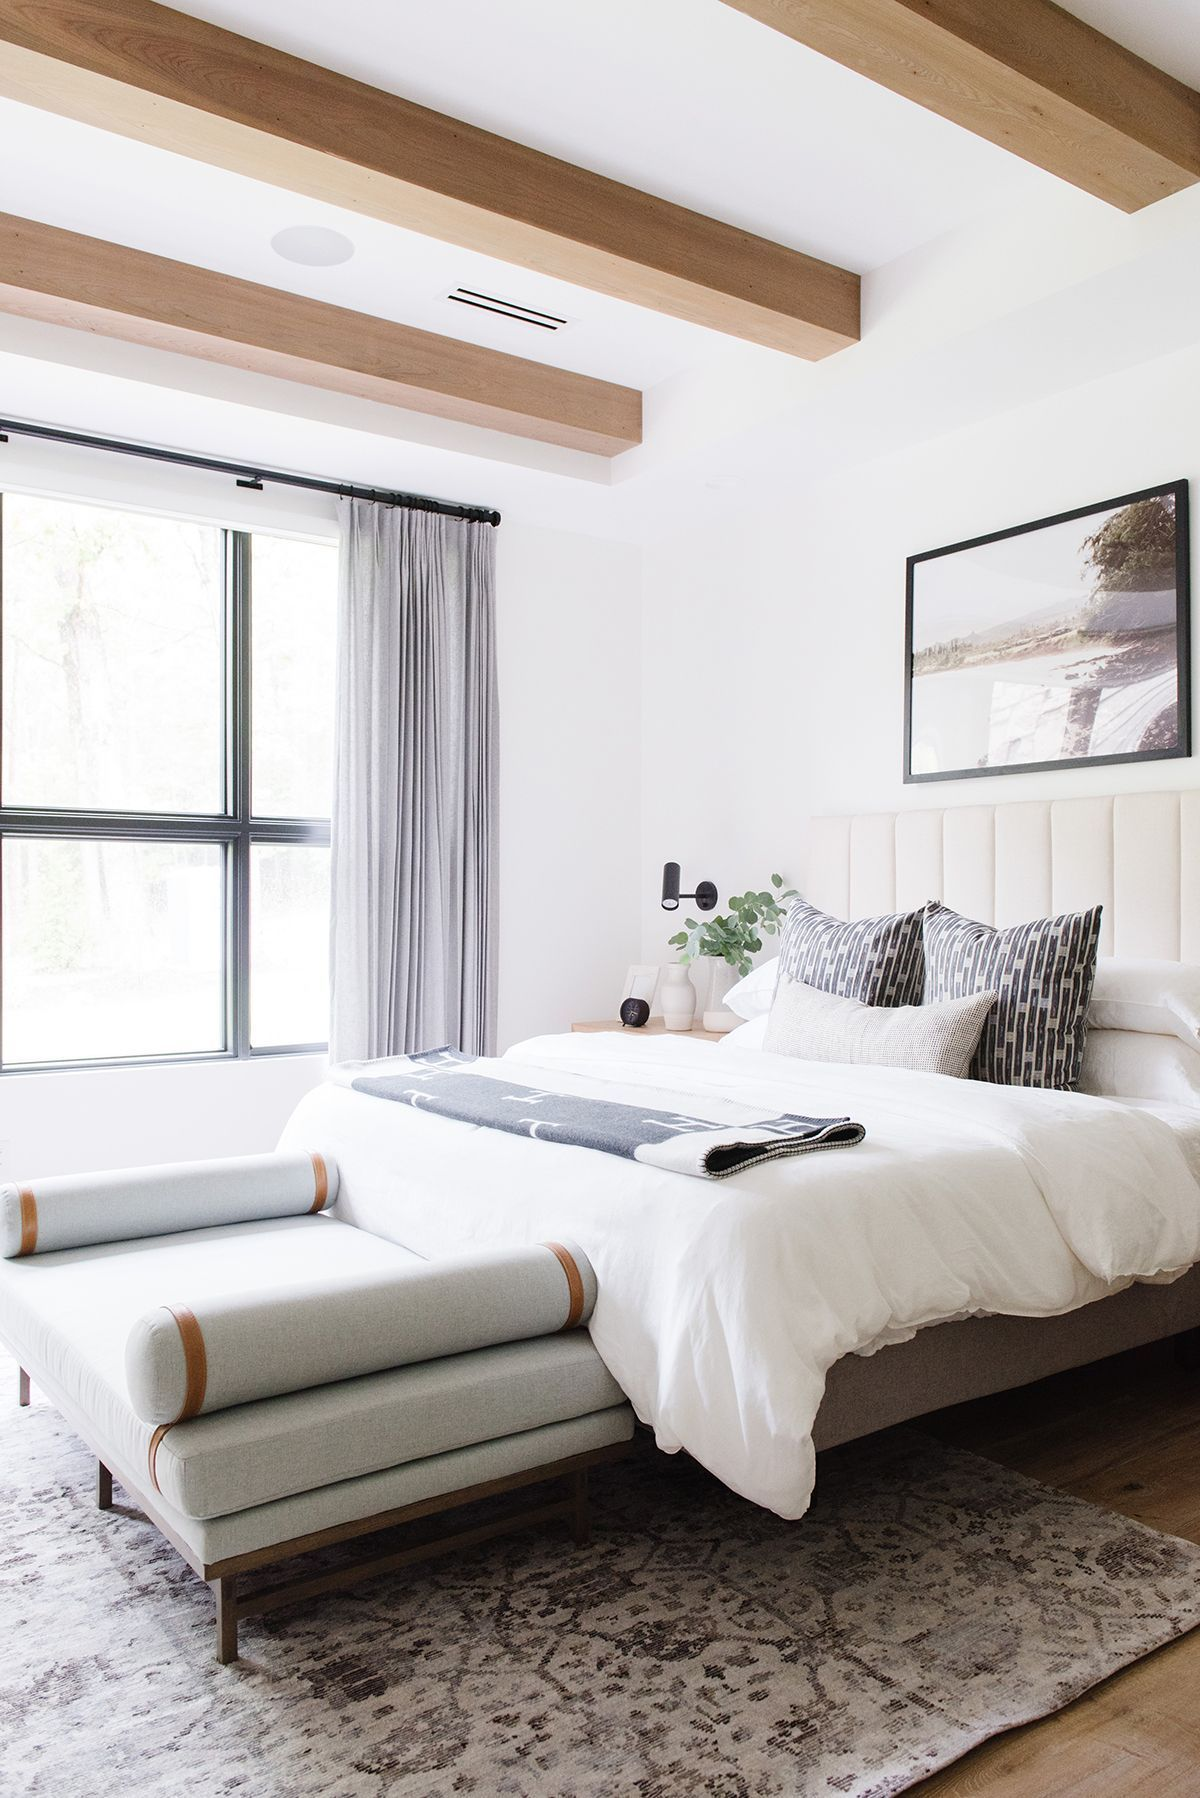 All The Bed Room Layout Suggestions You Need Are Right Here Get Inspired With Grown Up Bed Room Concep Home Decor Bedroom Modern Master Bedroom Modern Bedroom